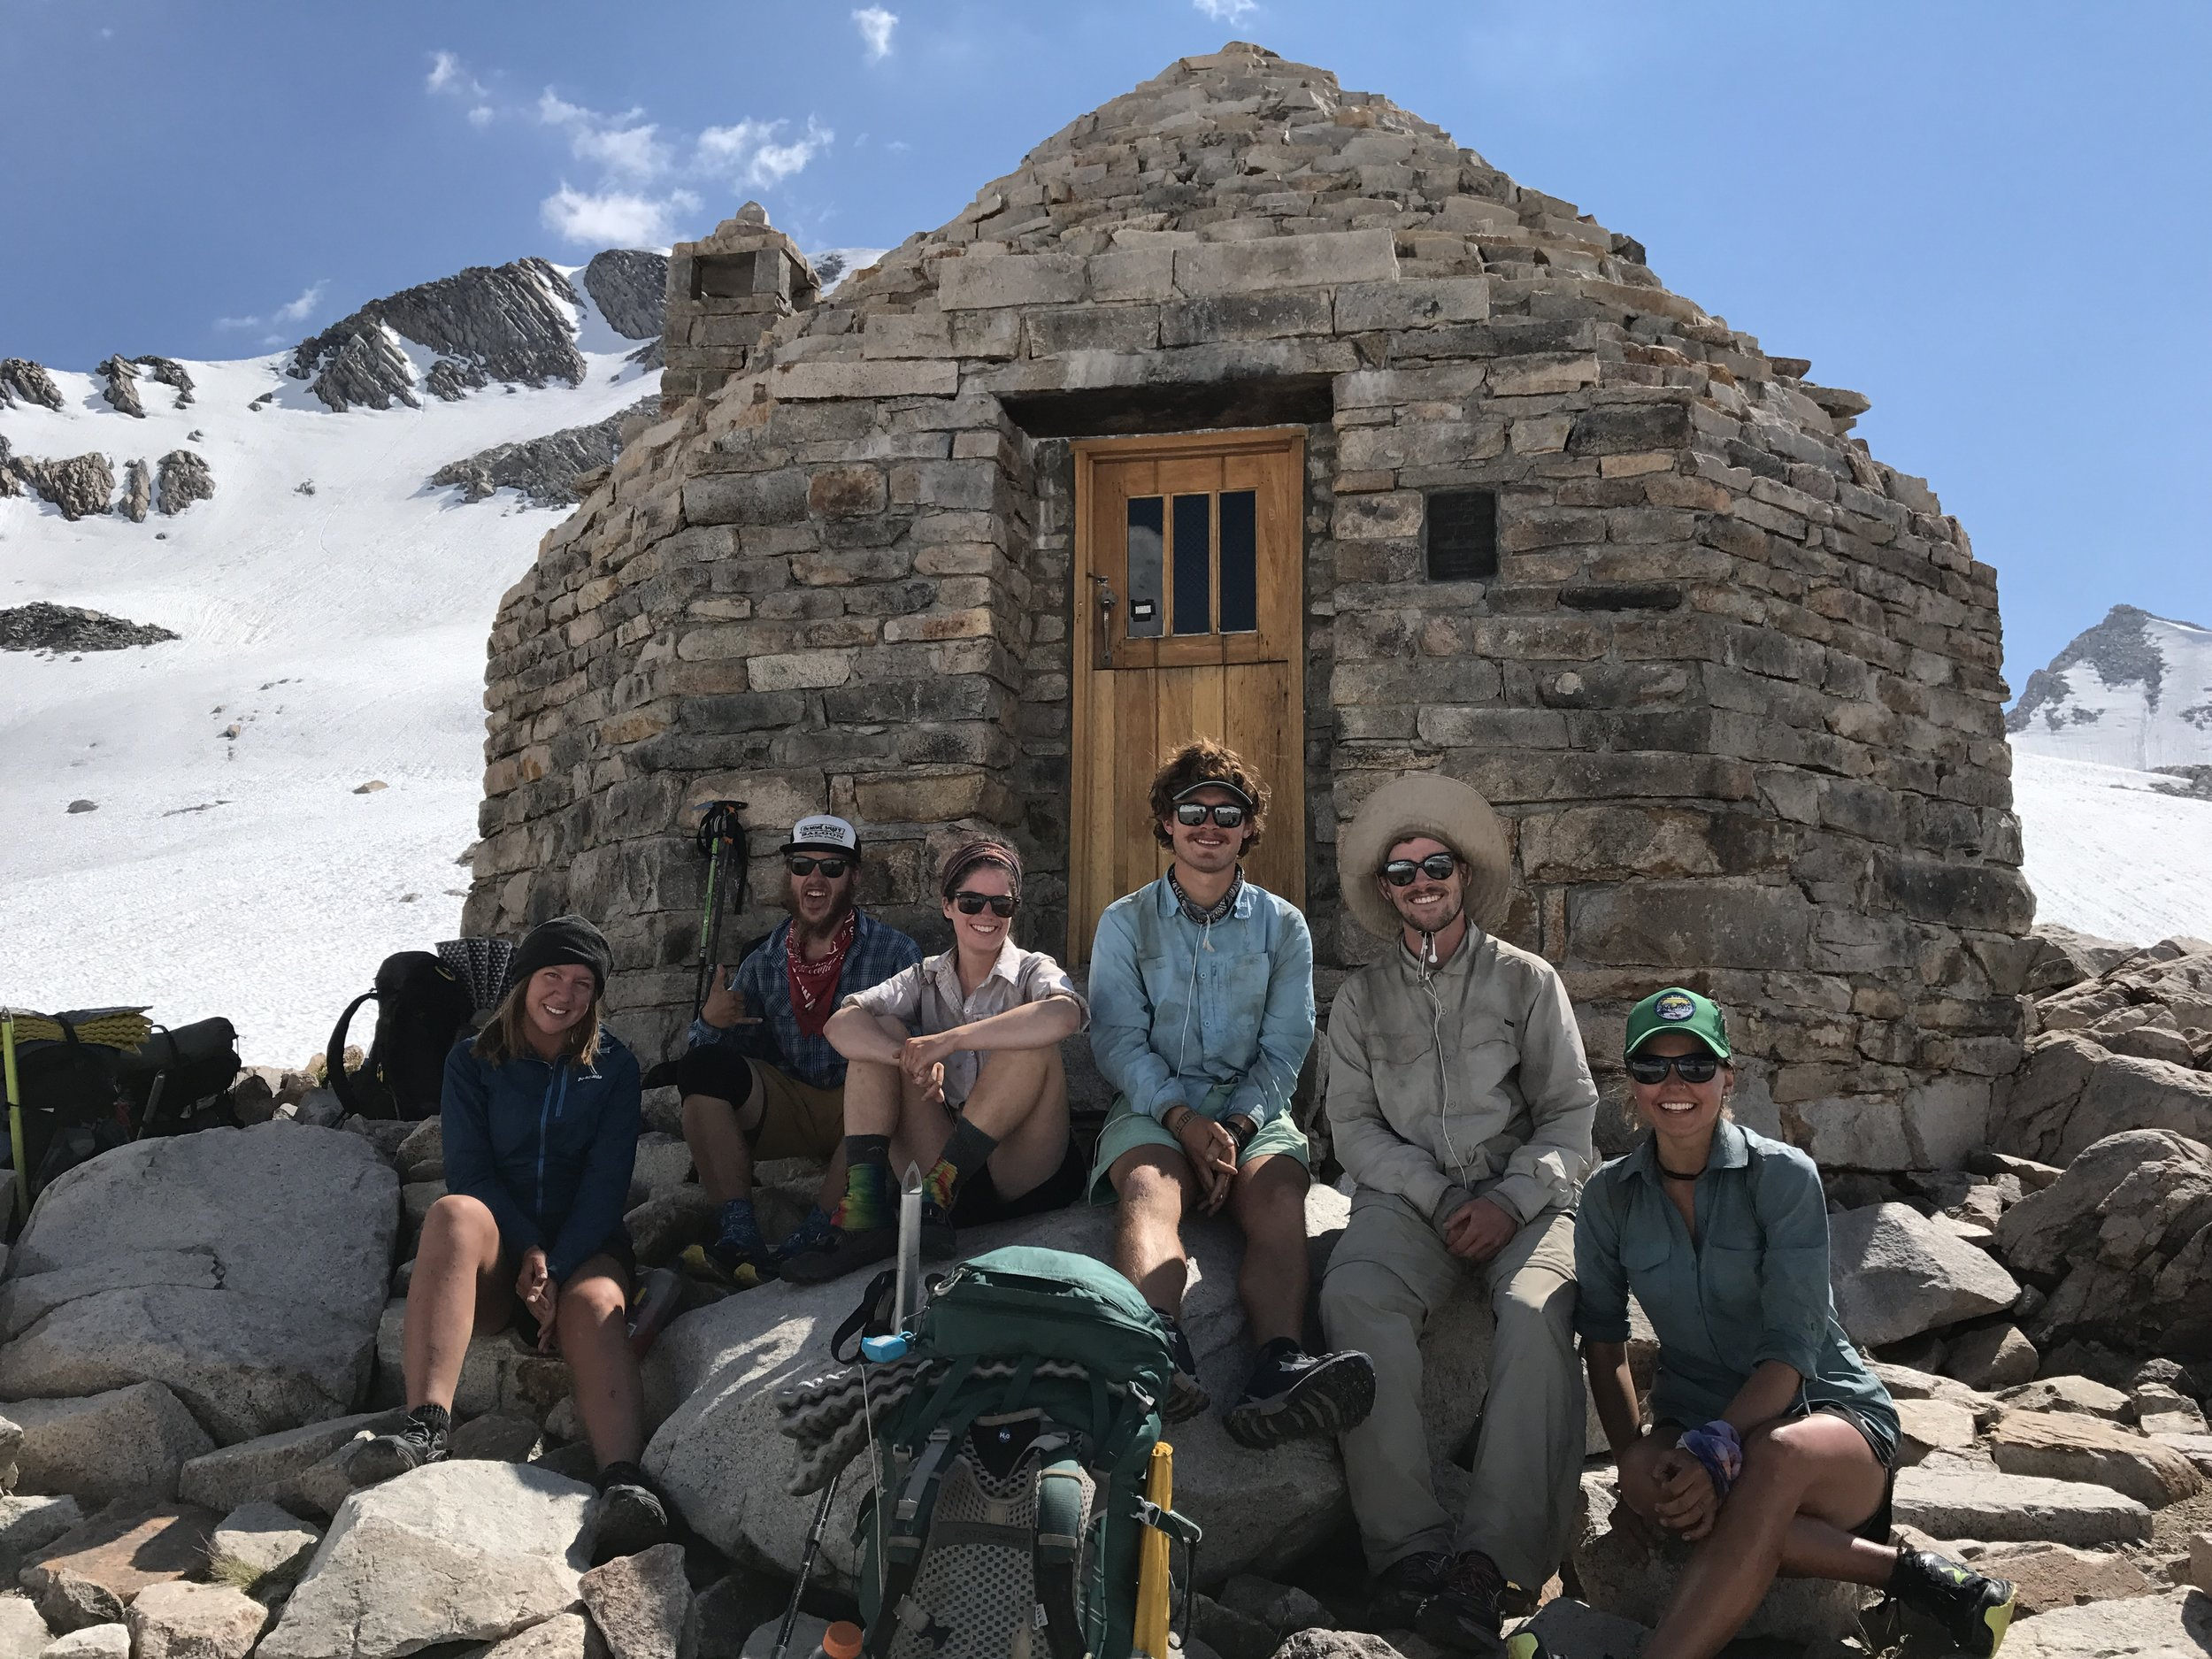 Squad portrait at Muir hut. Myself, Cody, Sara, Cy, Lukas, Jade